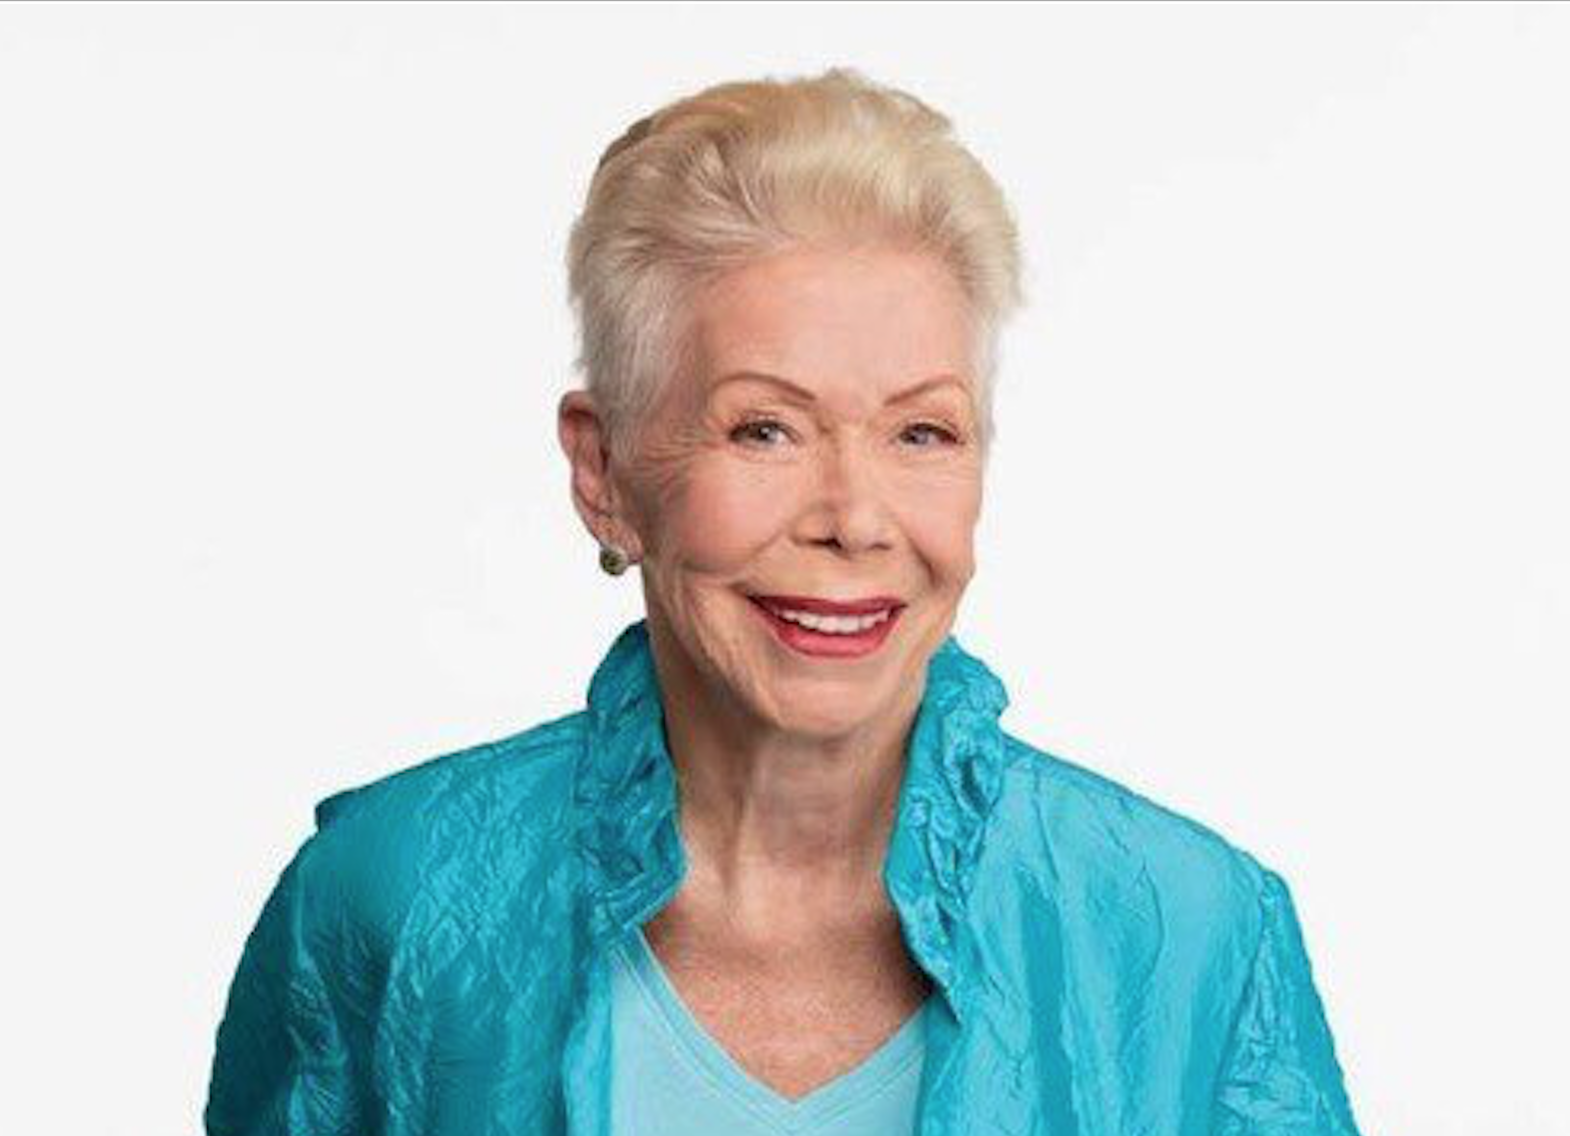 In honor of writer Louise Hay, we've rounded up some of her most impactful quotes